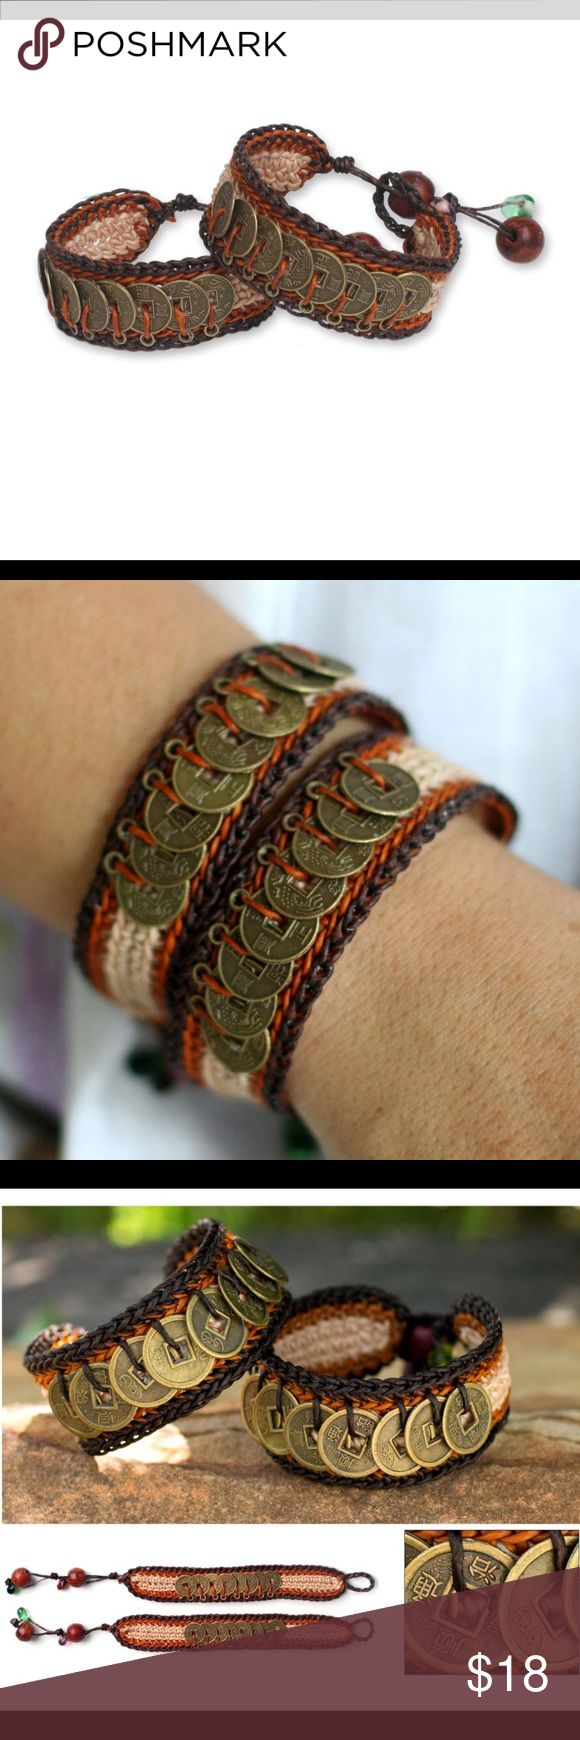 Chinese Brass Coins Orange Brown Crochet Bracelets This handmade creation is offered in partnership with NOVICA, in association with National Geographic. These bracelets feature replicas of Chinese coins in brass and are crafted with wood and glass beads.  Product Features: Color: Orange/white/brown Design based on Feng Shui Brass replicas of Chinese coins, thought to bring wealth and success Two handmade bracelets are crocheted and adorned with rain tree wood and glass beads Toggle clasp…